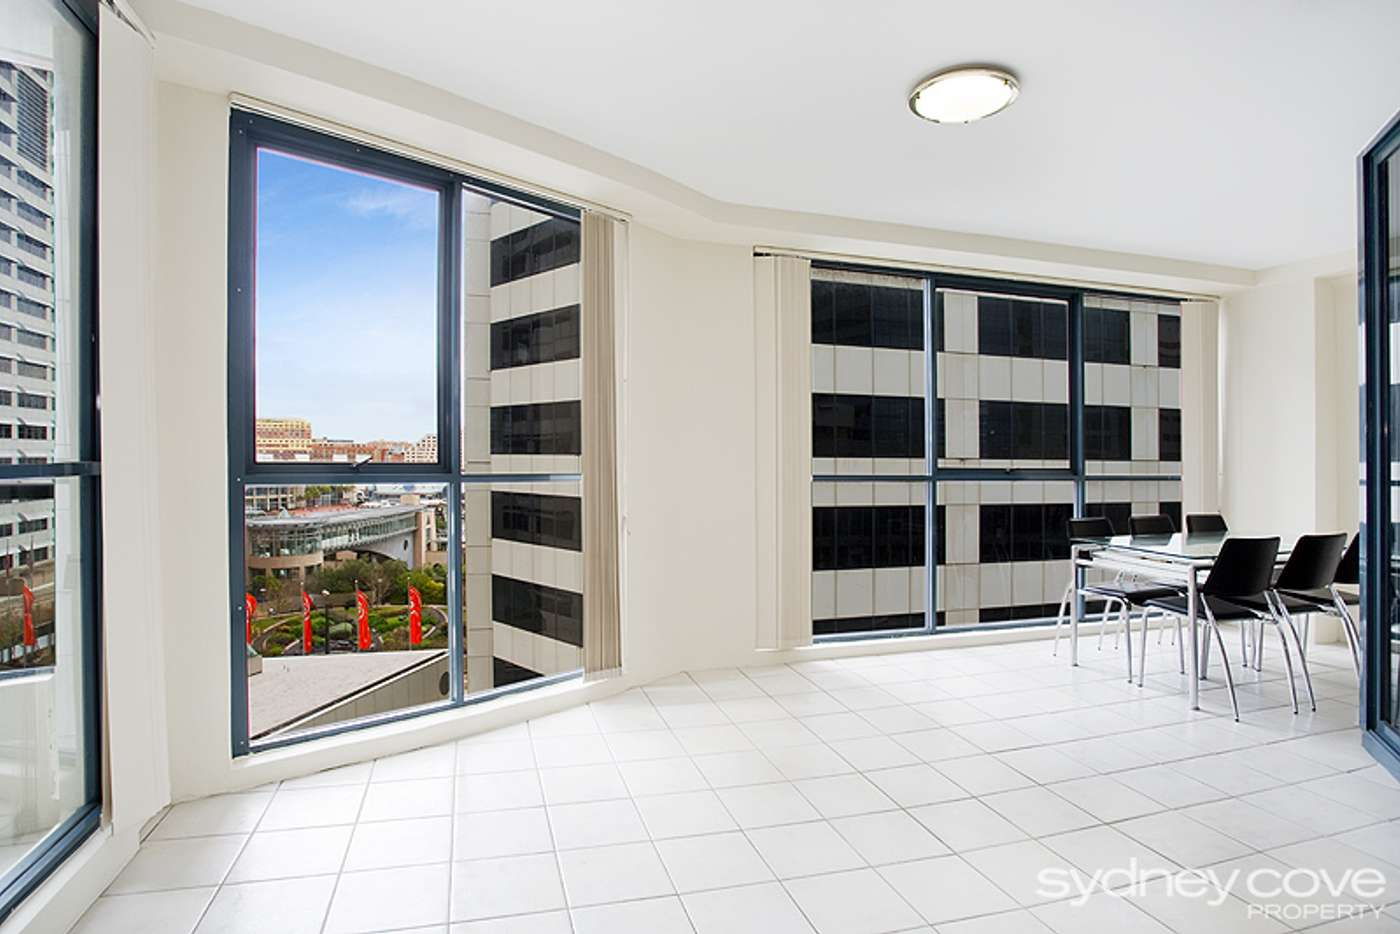 Main view of Homely apartment listing, 222 Sussex St, Sydney NSW 2000